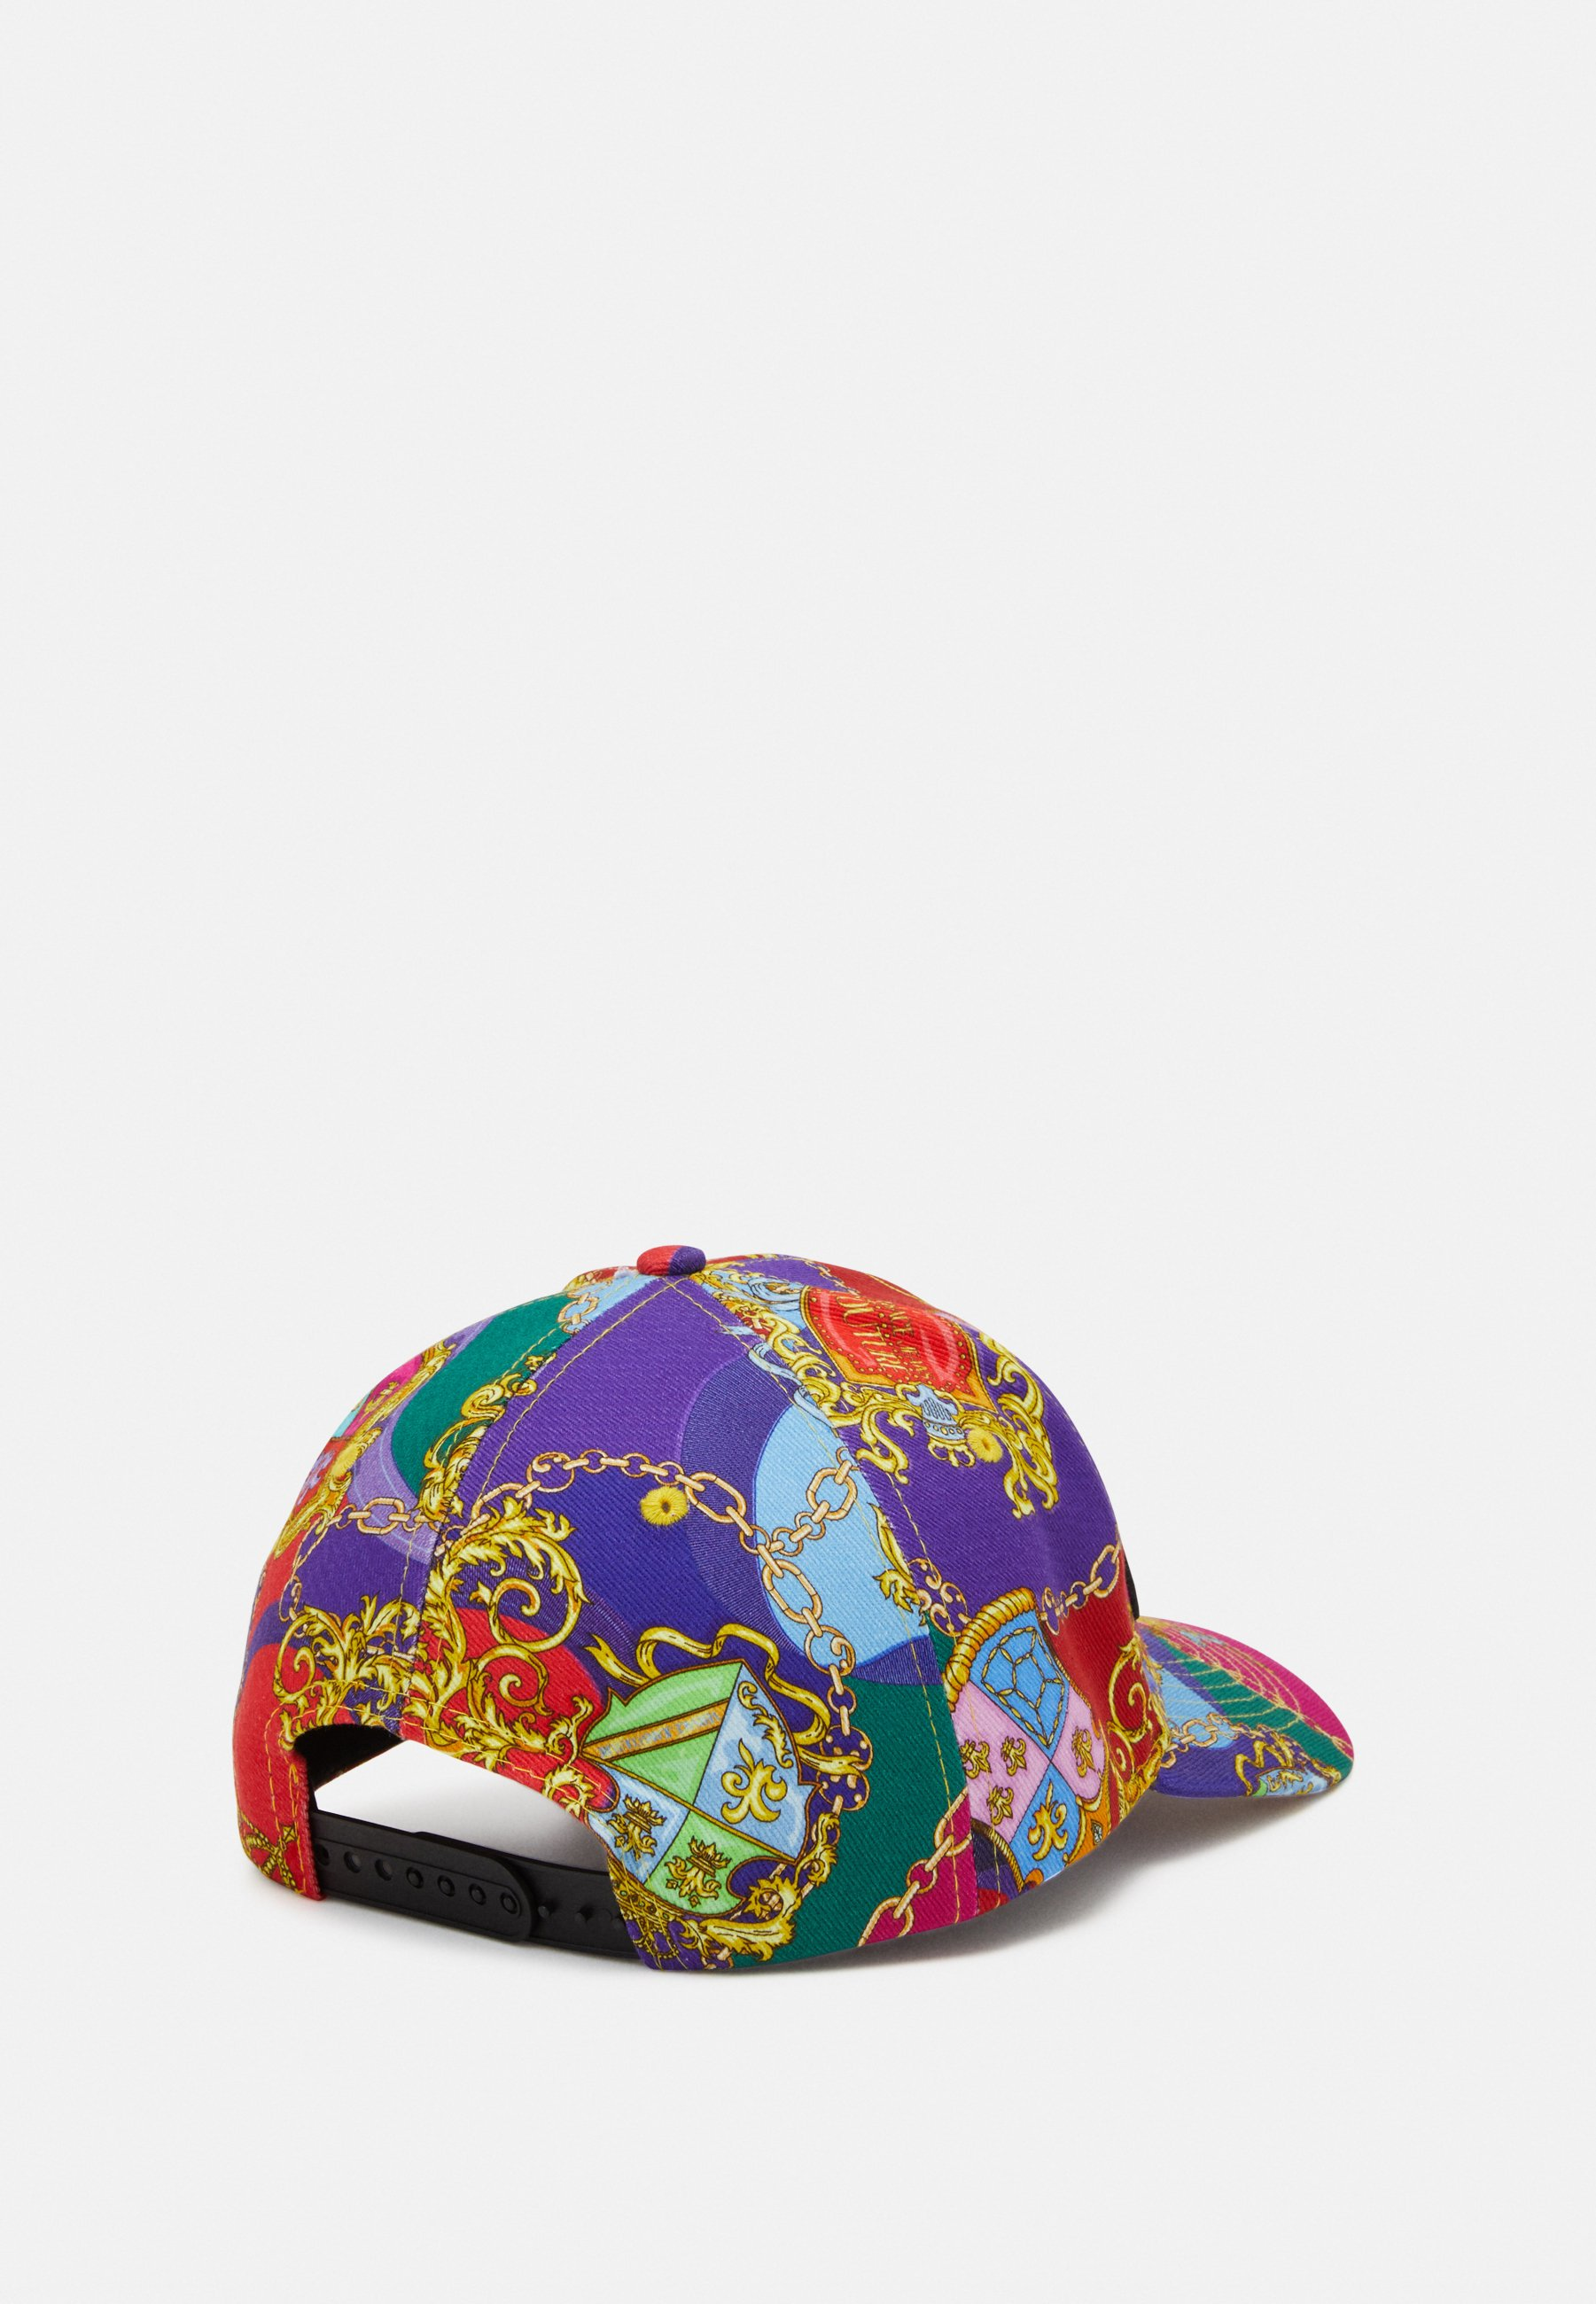 Versace Jeans Couture Cap - Multi-coloured/gold/mehrfarbig